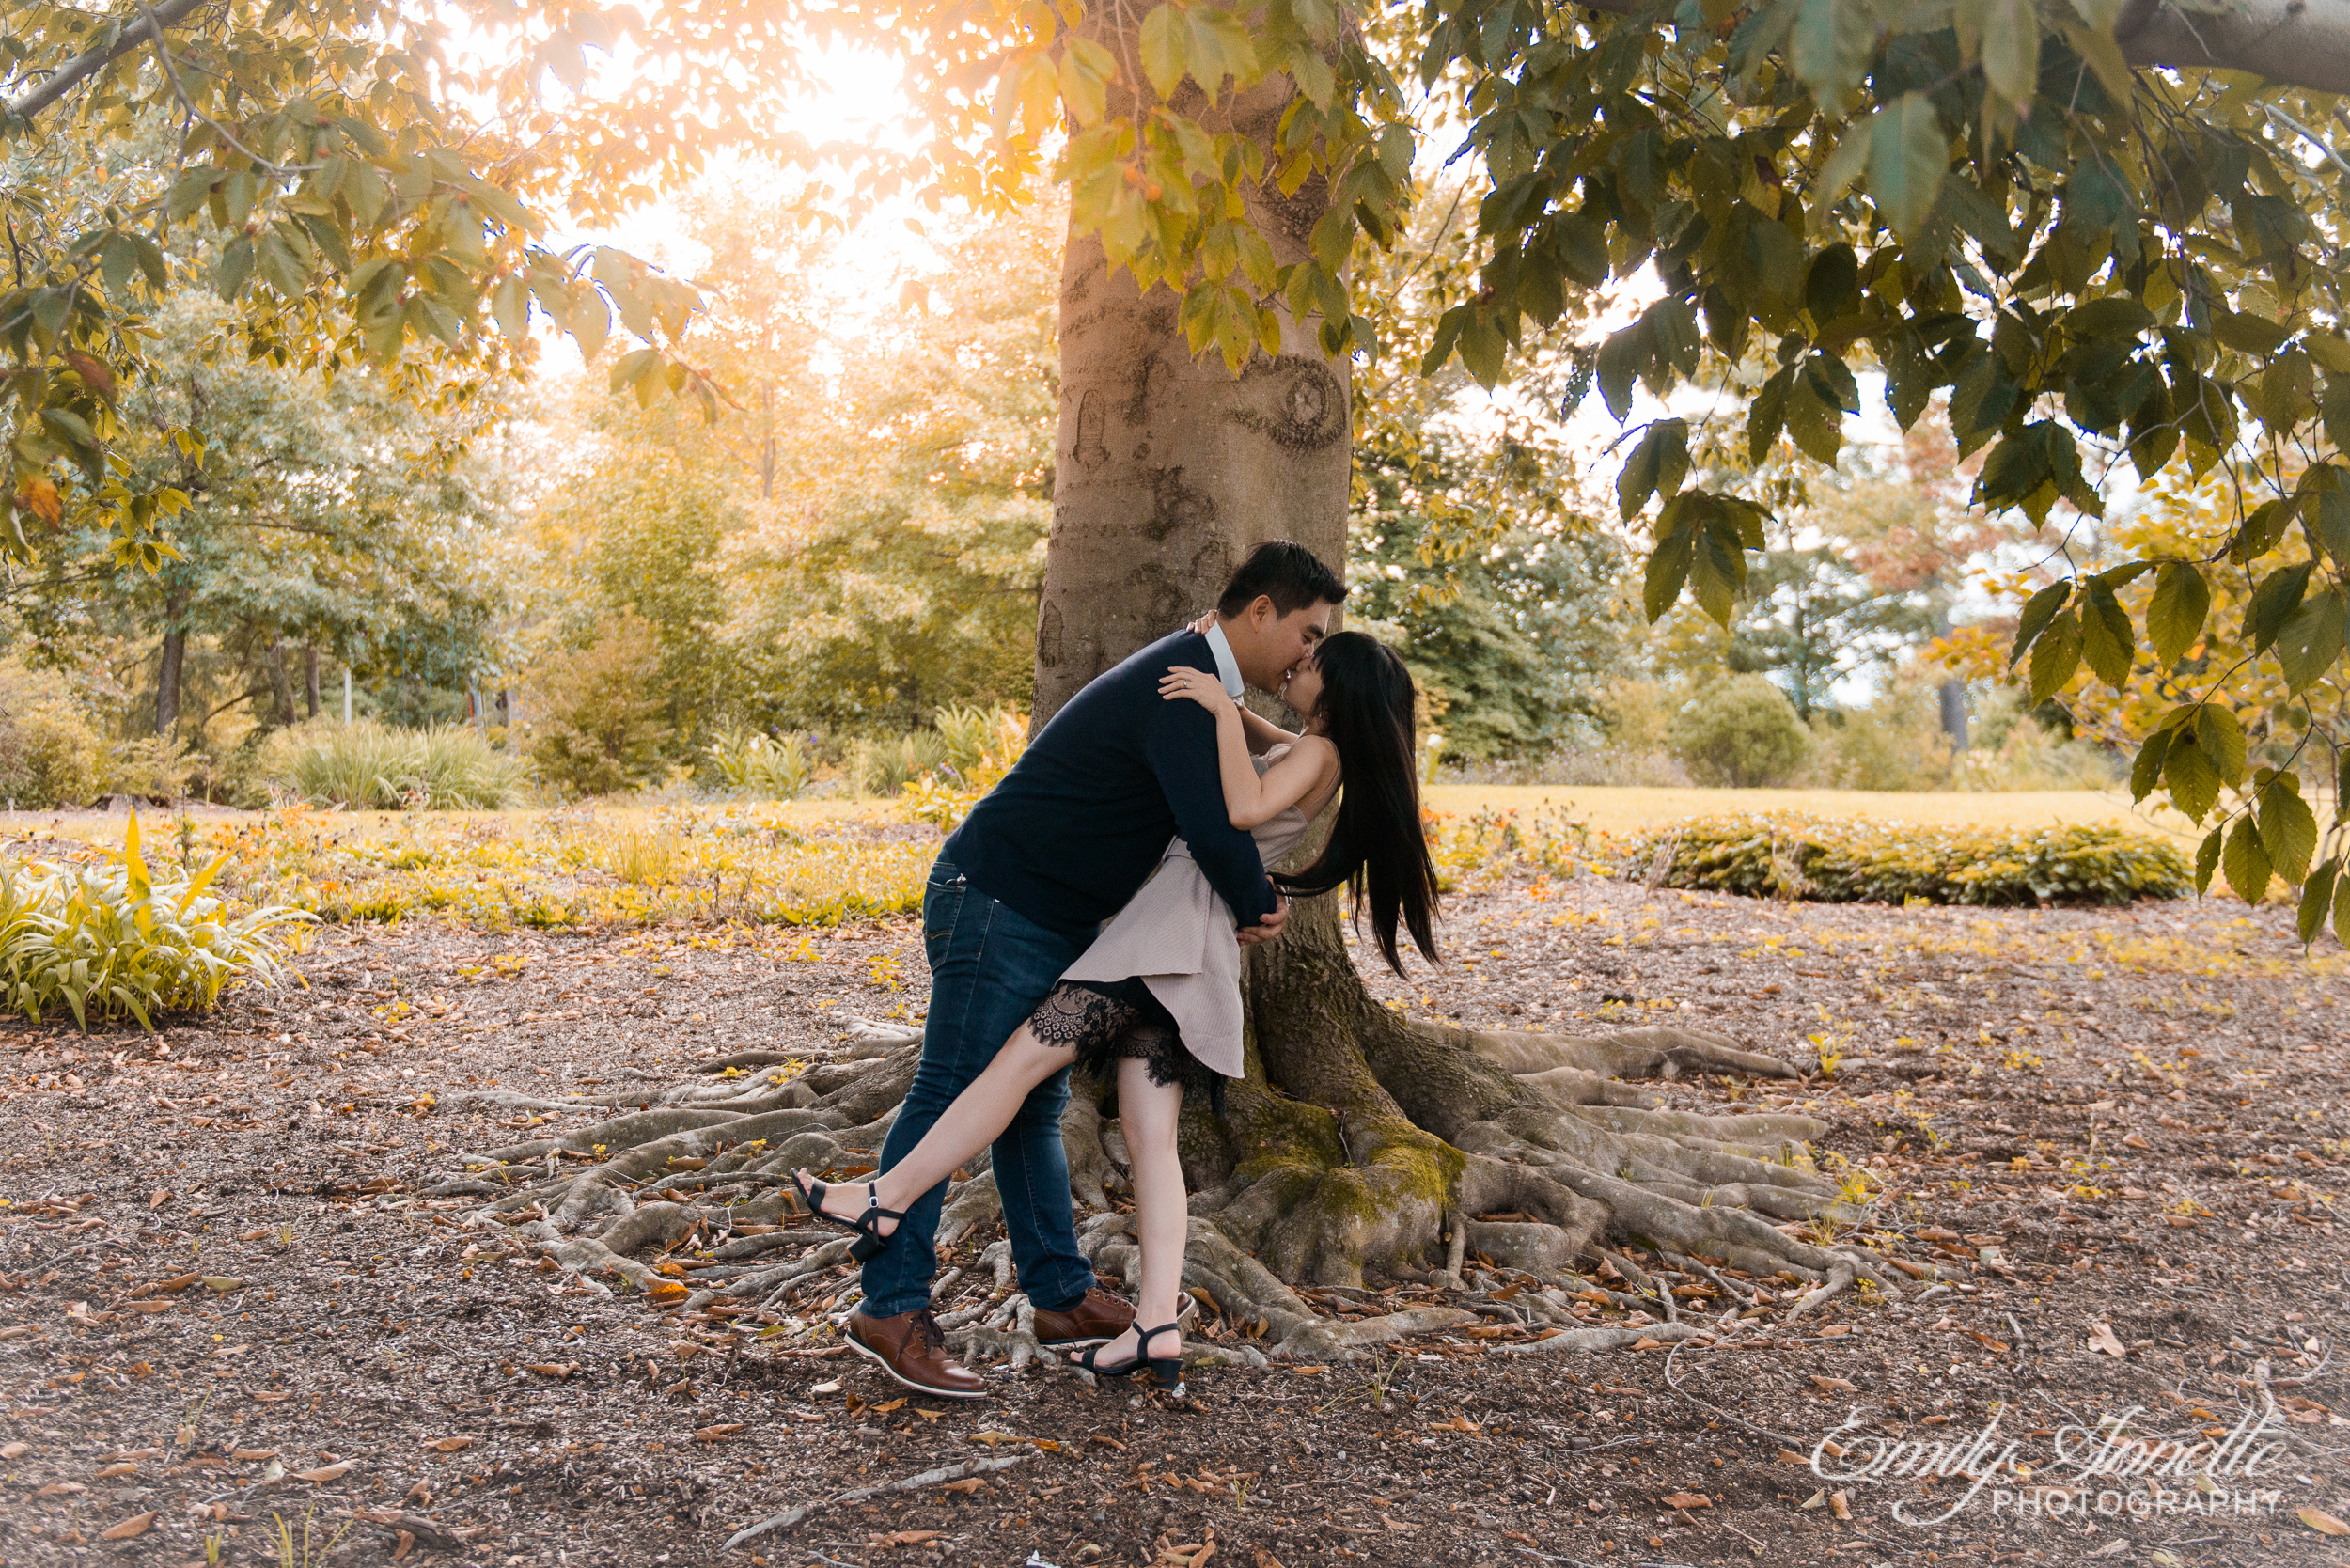 A young couple dip for a dramatic kiss beside a tree at Green Spring Gardens Park in Fairfax, Virginia